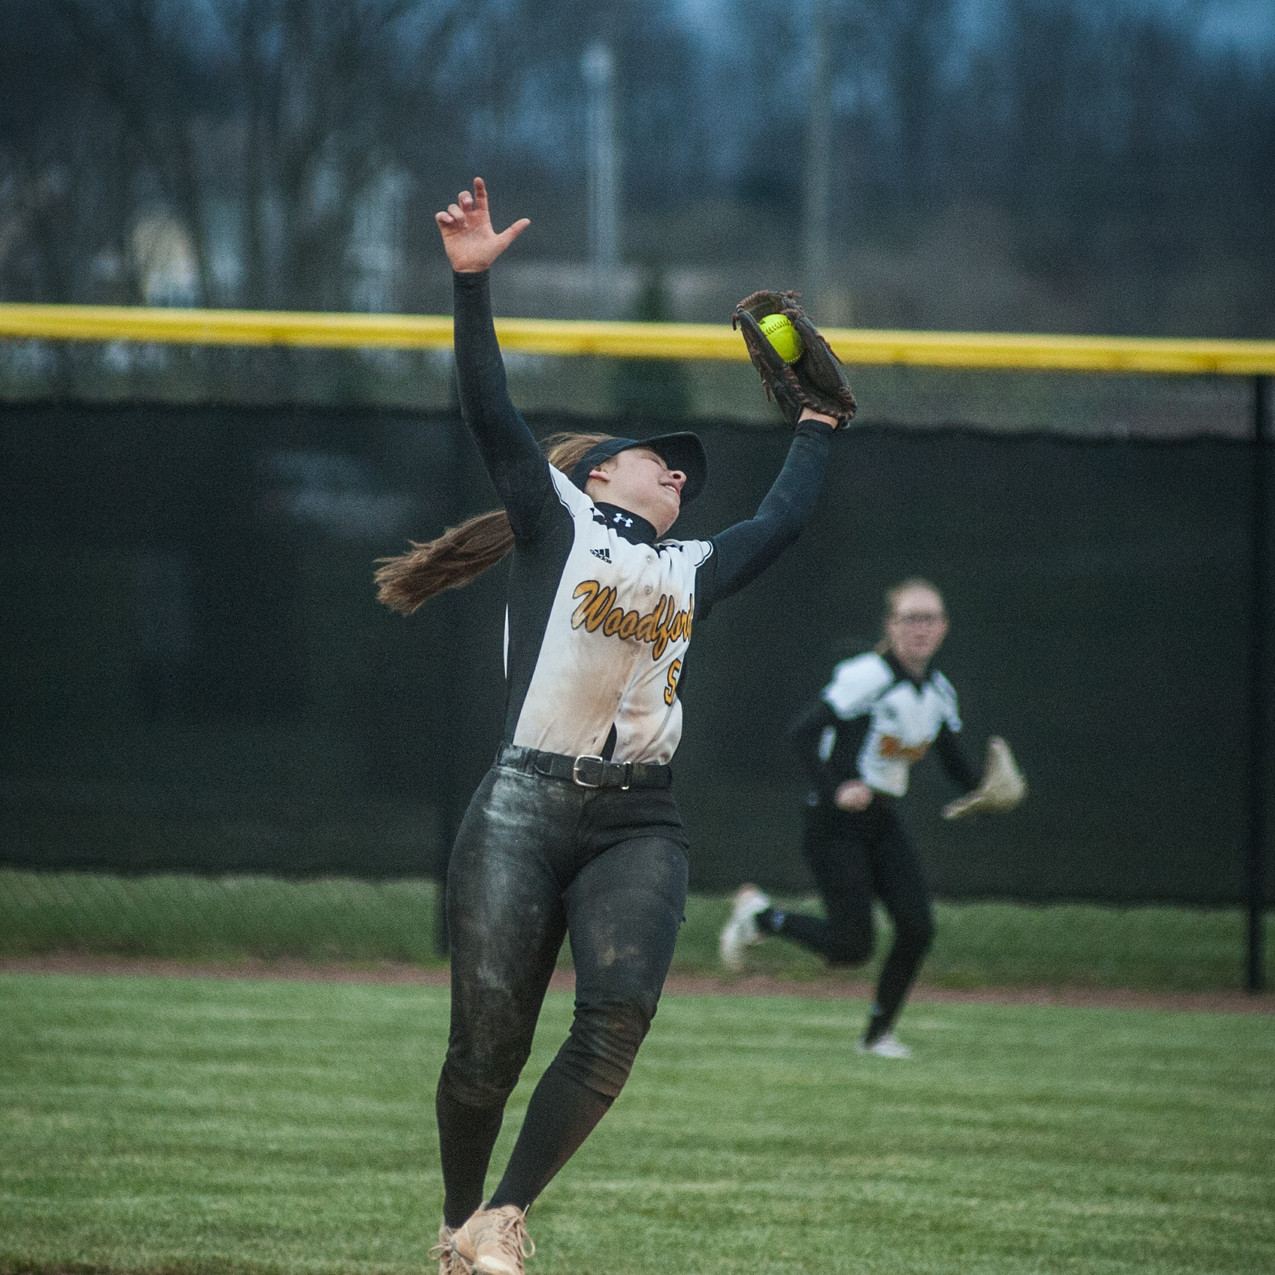 WCHS SENIOR PEYTON ROSE falls backwards after jumping to snag a line drive in the Lady Jackets win over Oldham County. (Photo by Bill Caine)